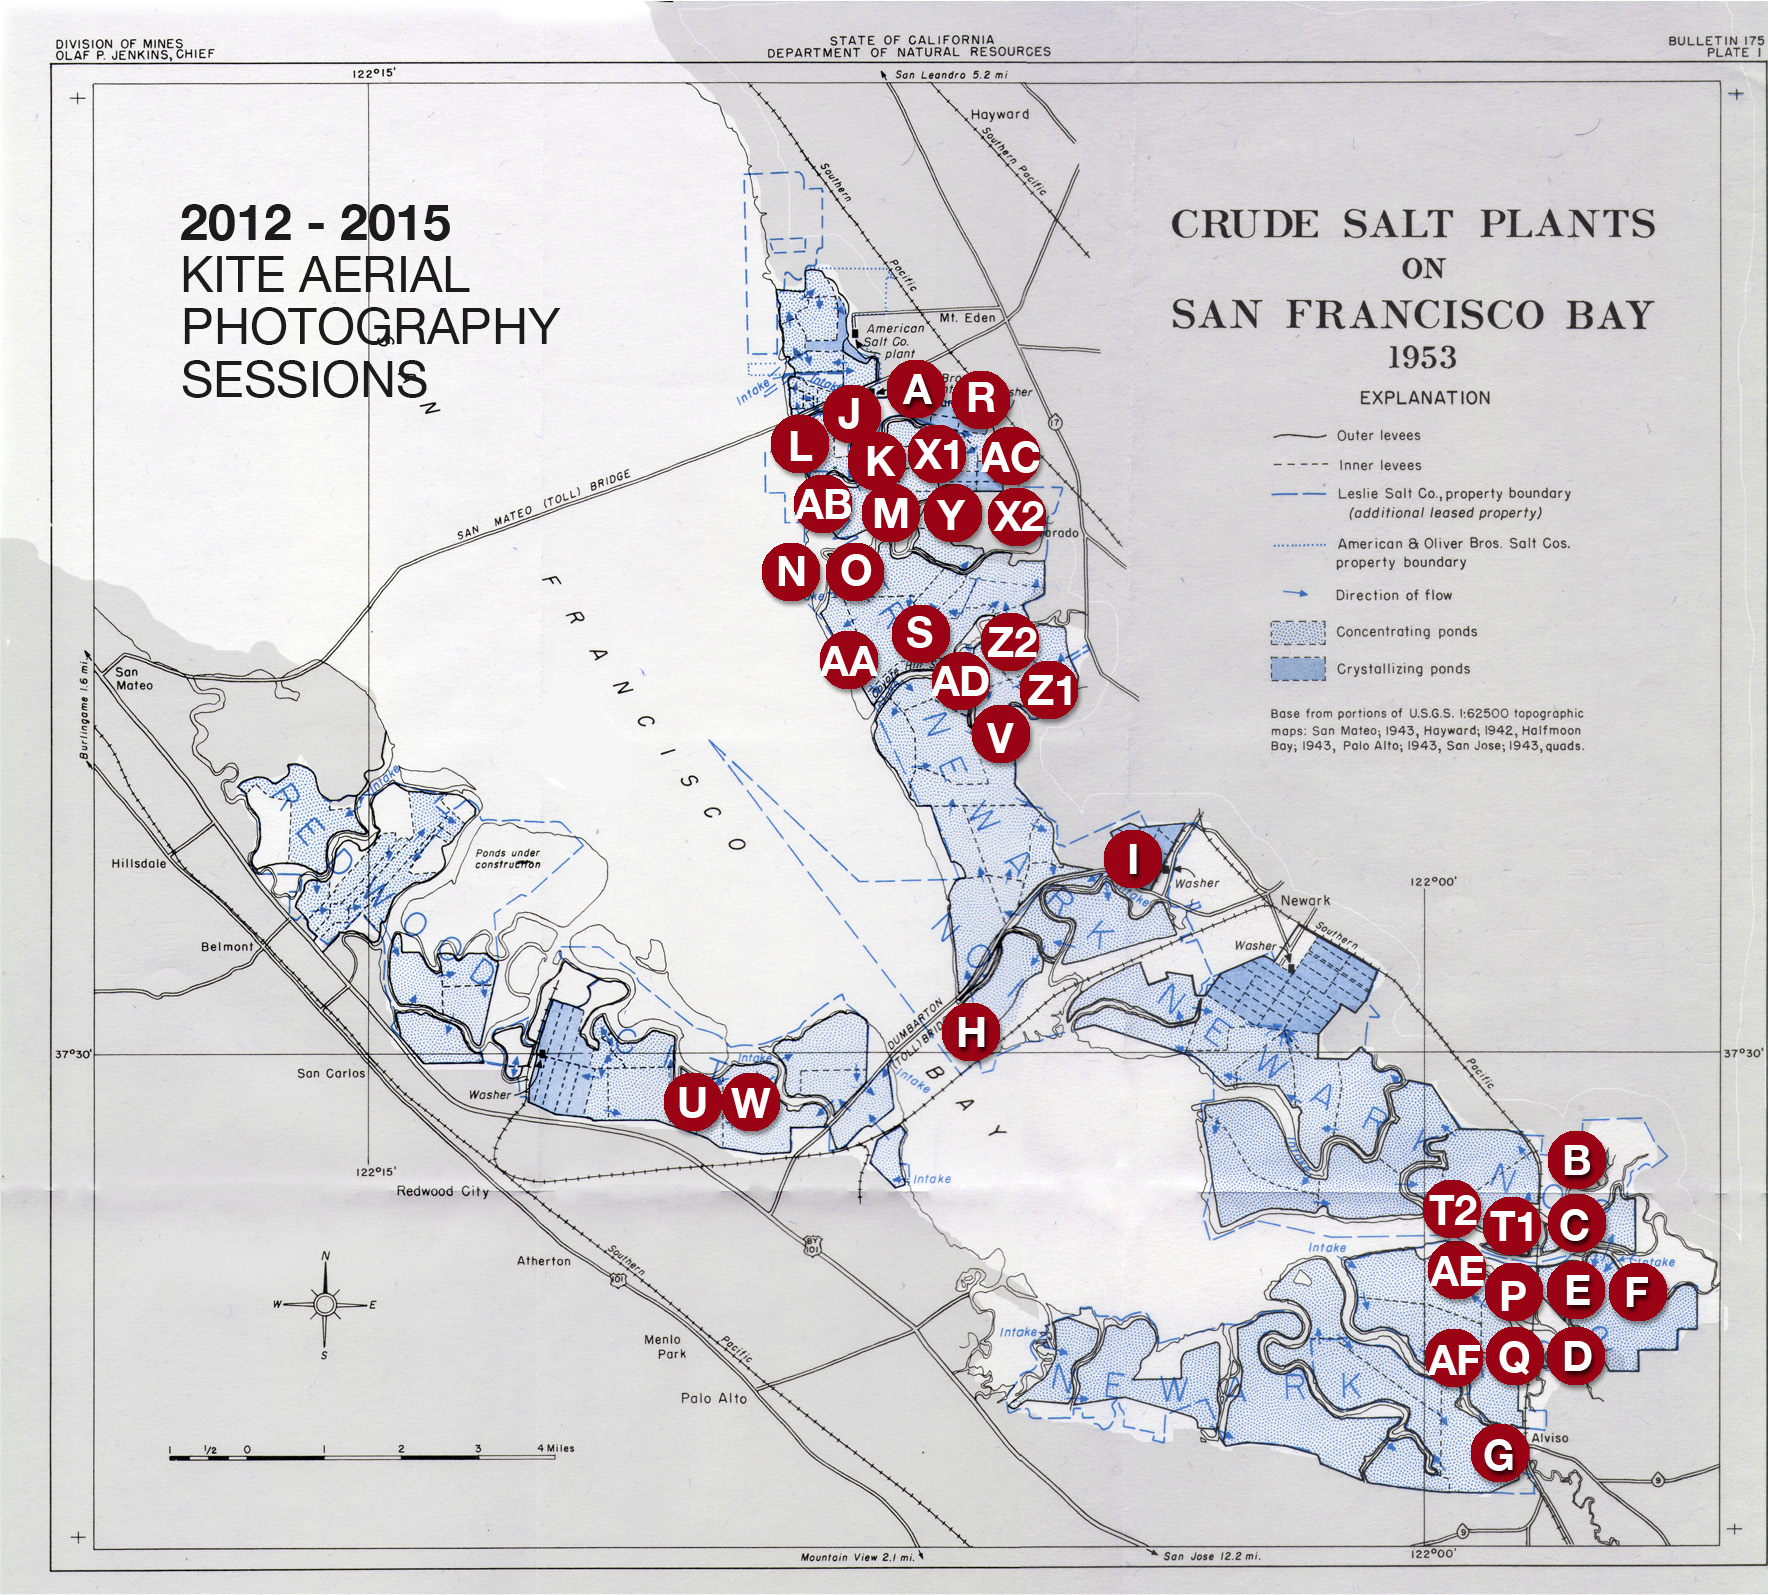 Session map for 2012 to 2015